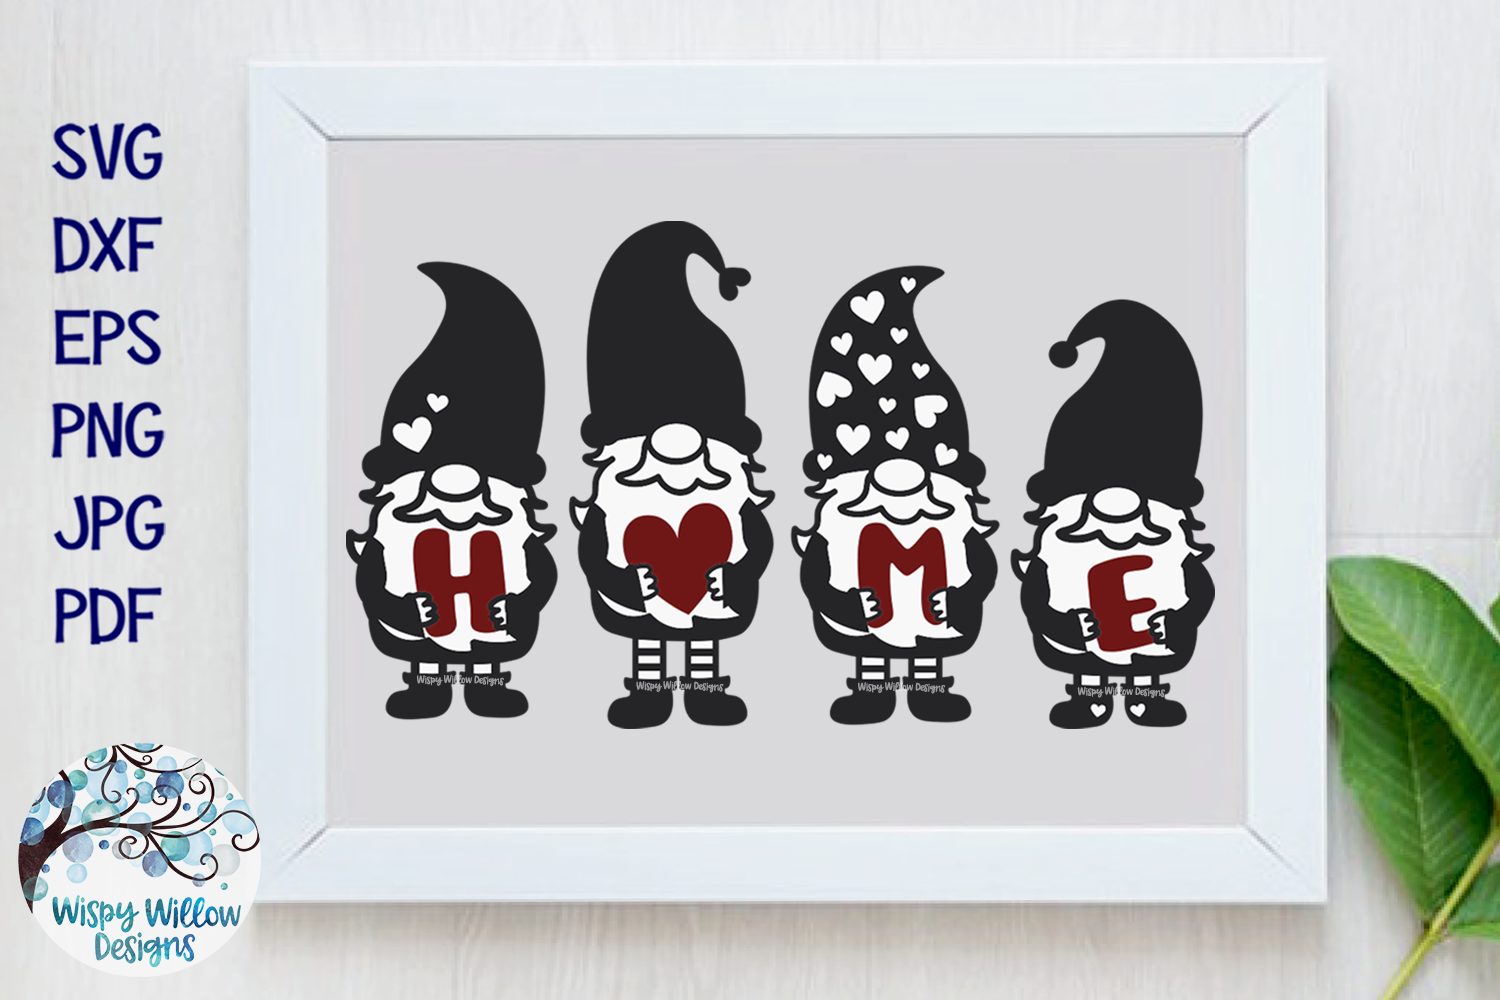 Gnomes Home SVG | Cute Gnomes Home Sign SVG Cut File example image 1